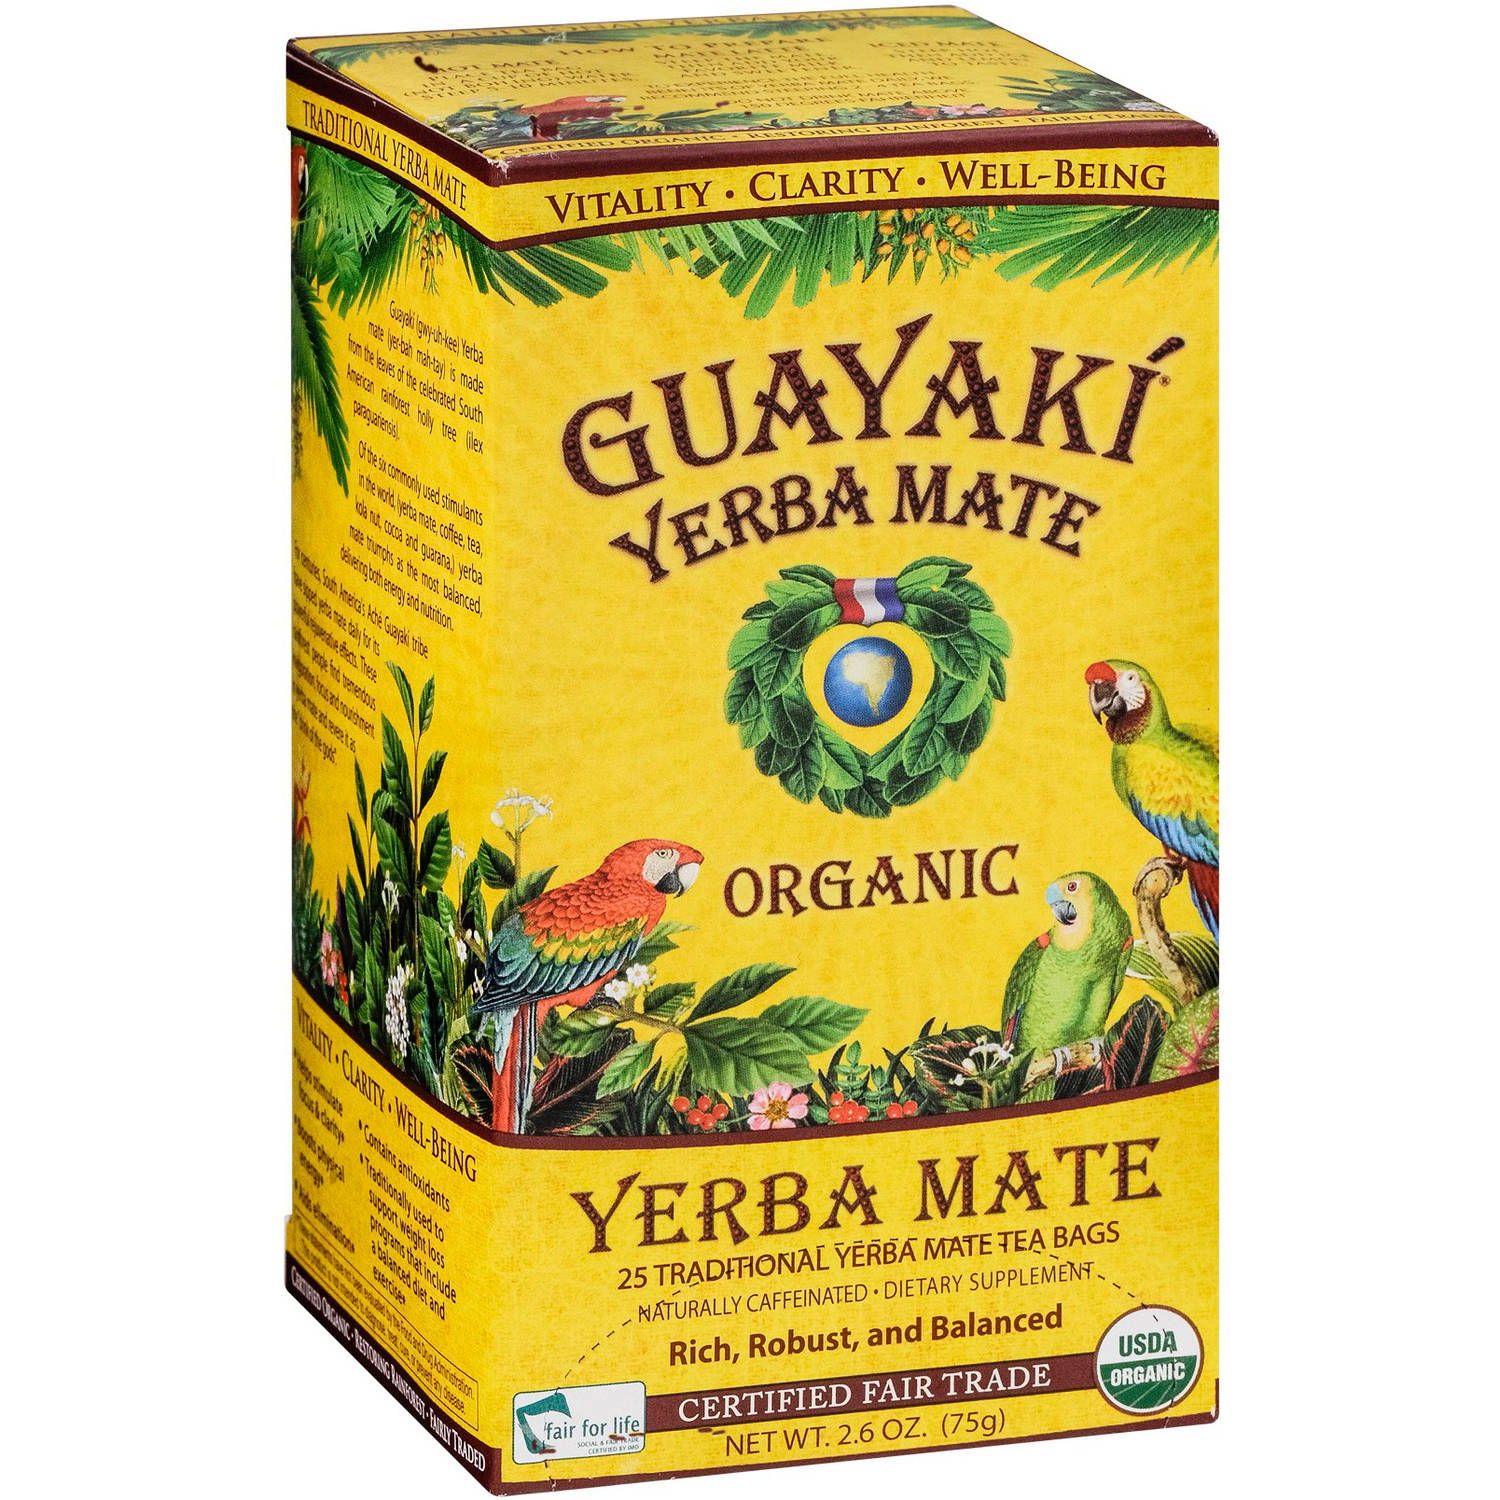 Guayaki Yerba Mate Traditional Yerba Mate Tea Dietary Supplement, 25 count, 2.6 oz, (Pack of 3)